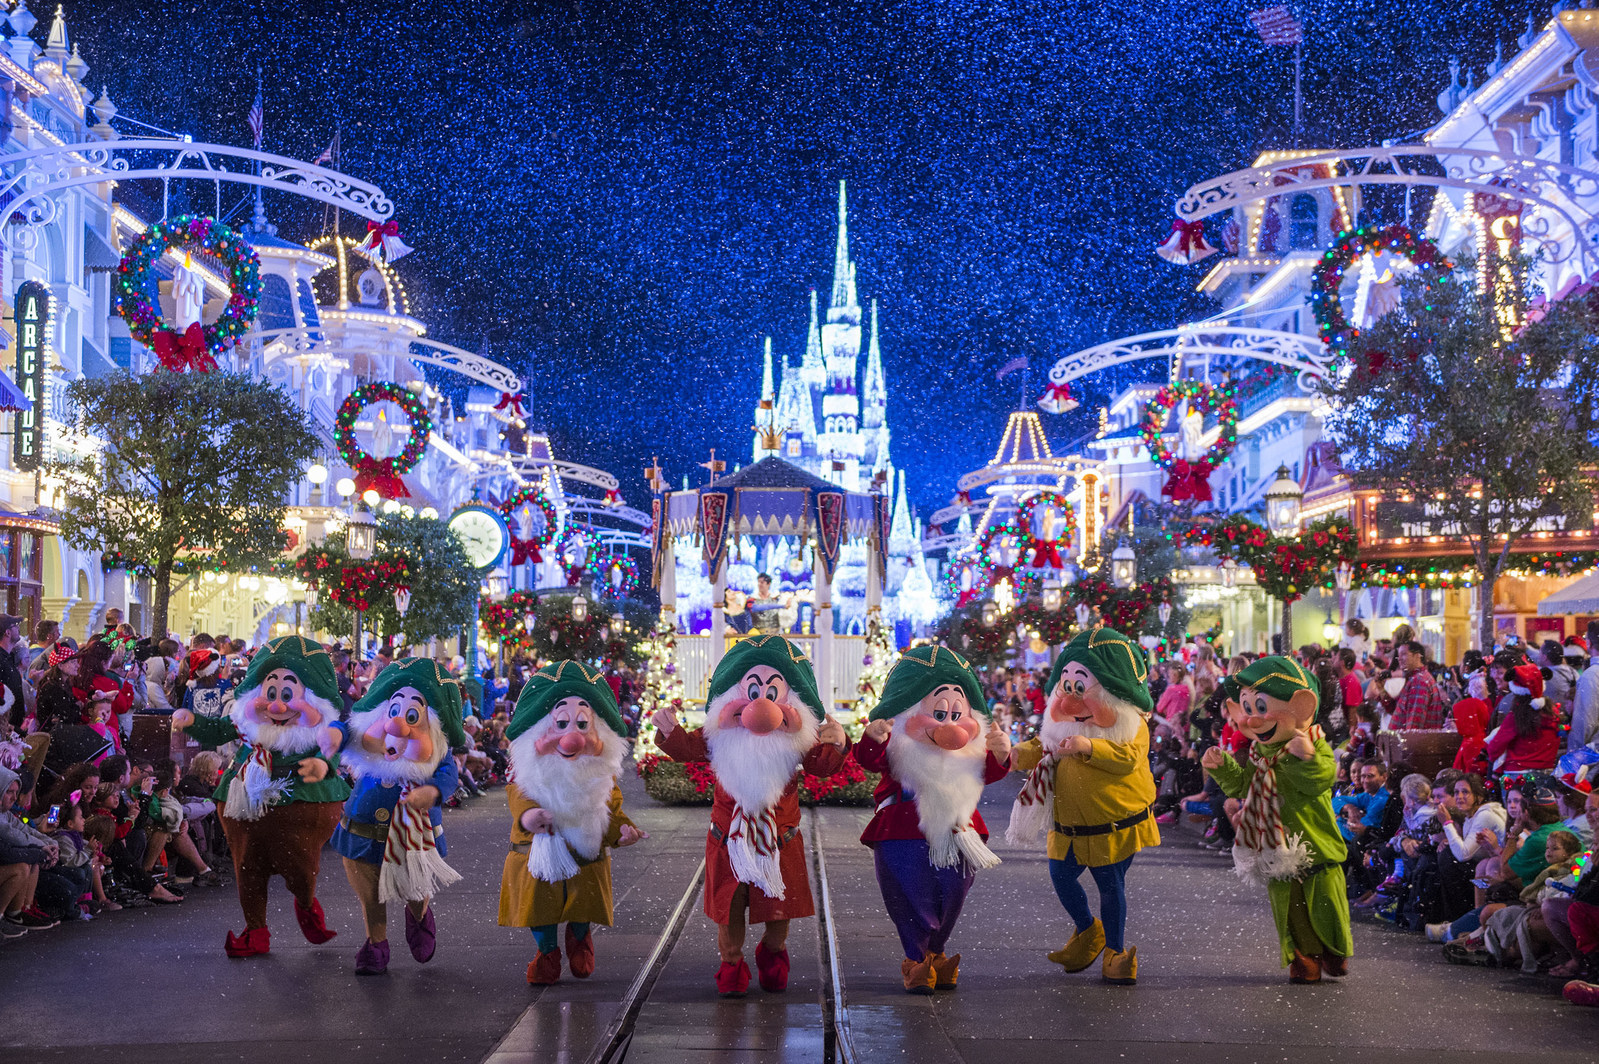 'Tis the Season to Celebrate With Travelzoo and Disney on Facebook Live